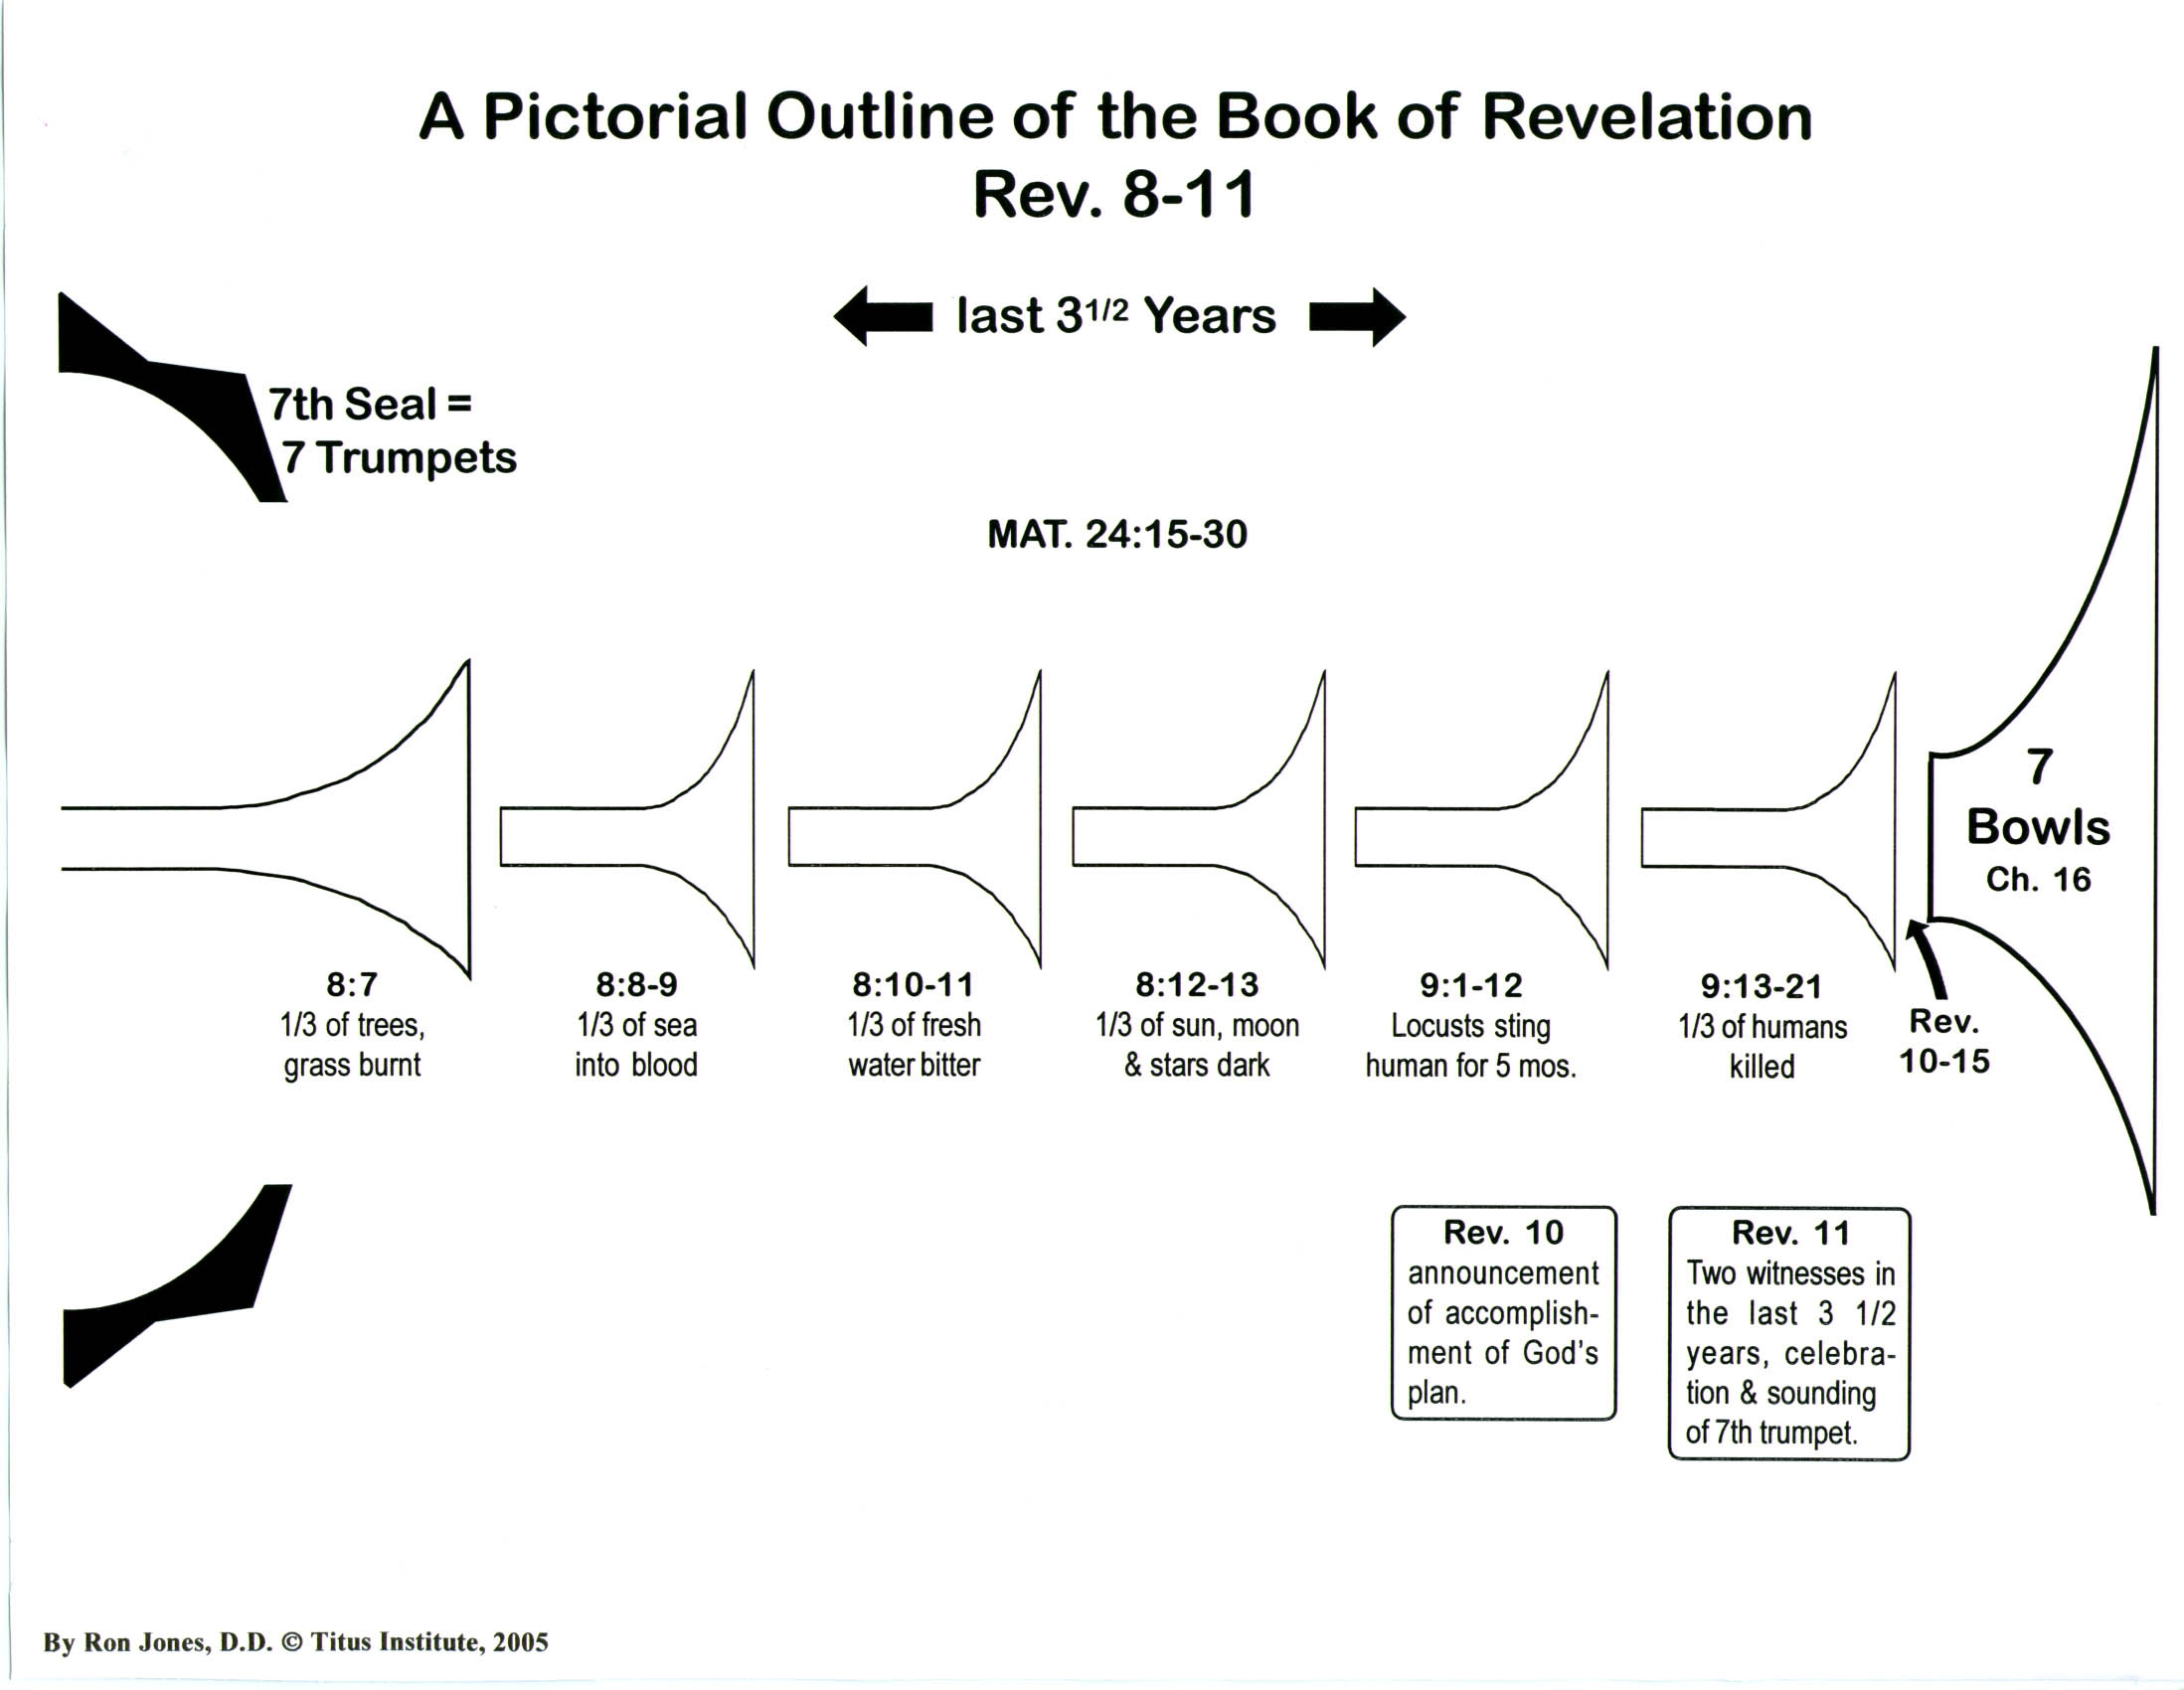 Pictorial outline of the book of revelation titus institute revelation 8 11 chart negle Choice Image